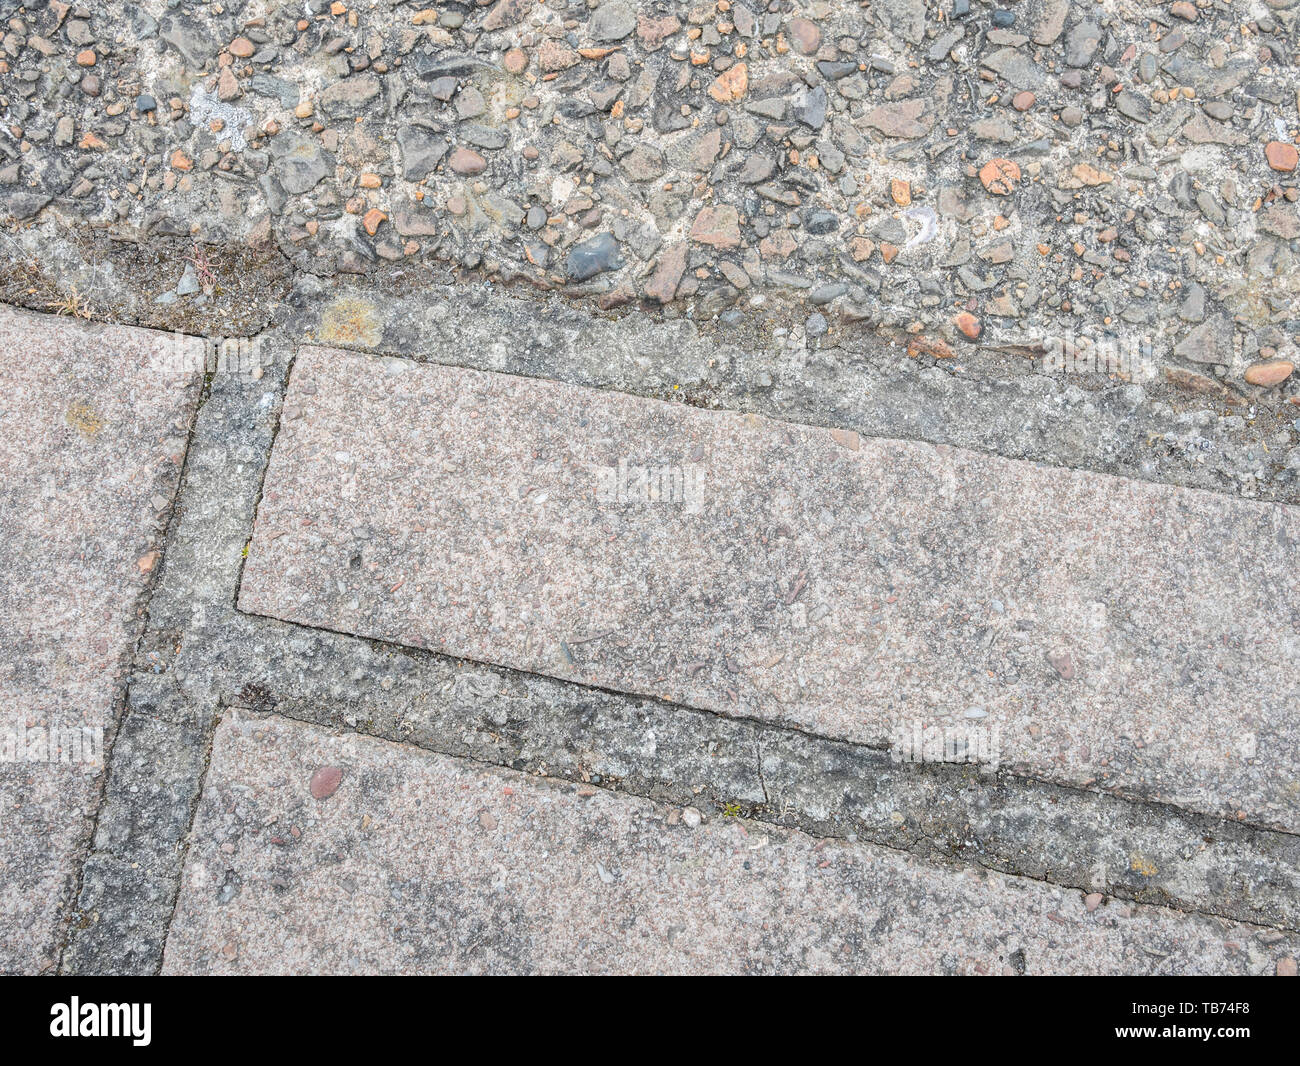 Badly fitting section of concrete paving. Metaphor 'a bad fit', gap filler, not fitting in, widening gap. - Stock Image